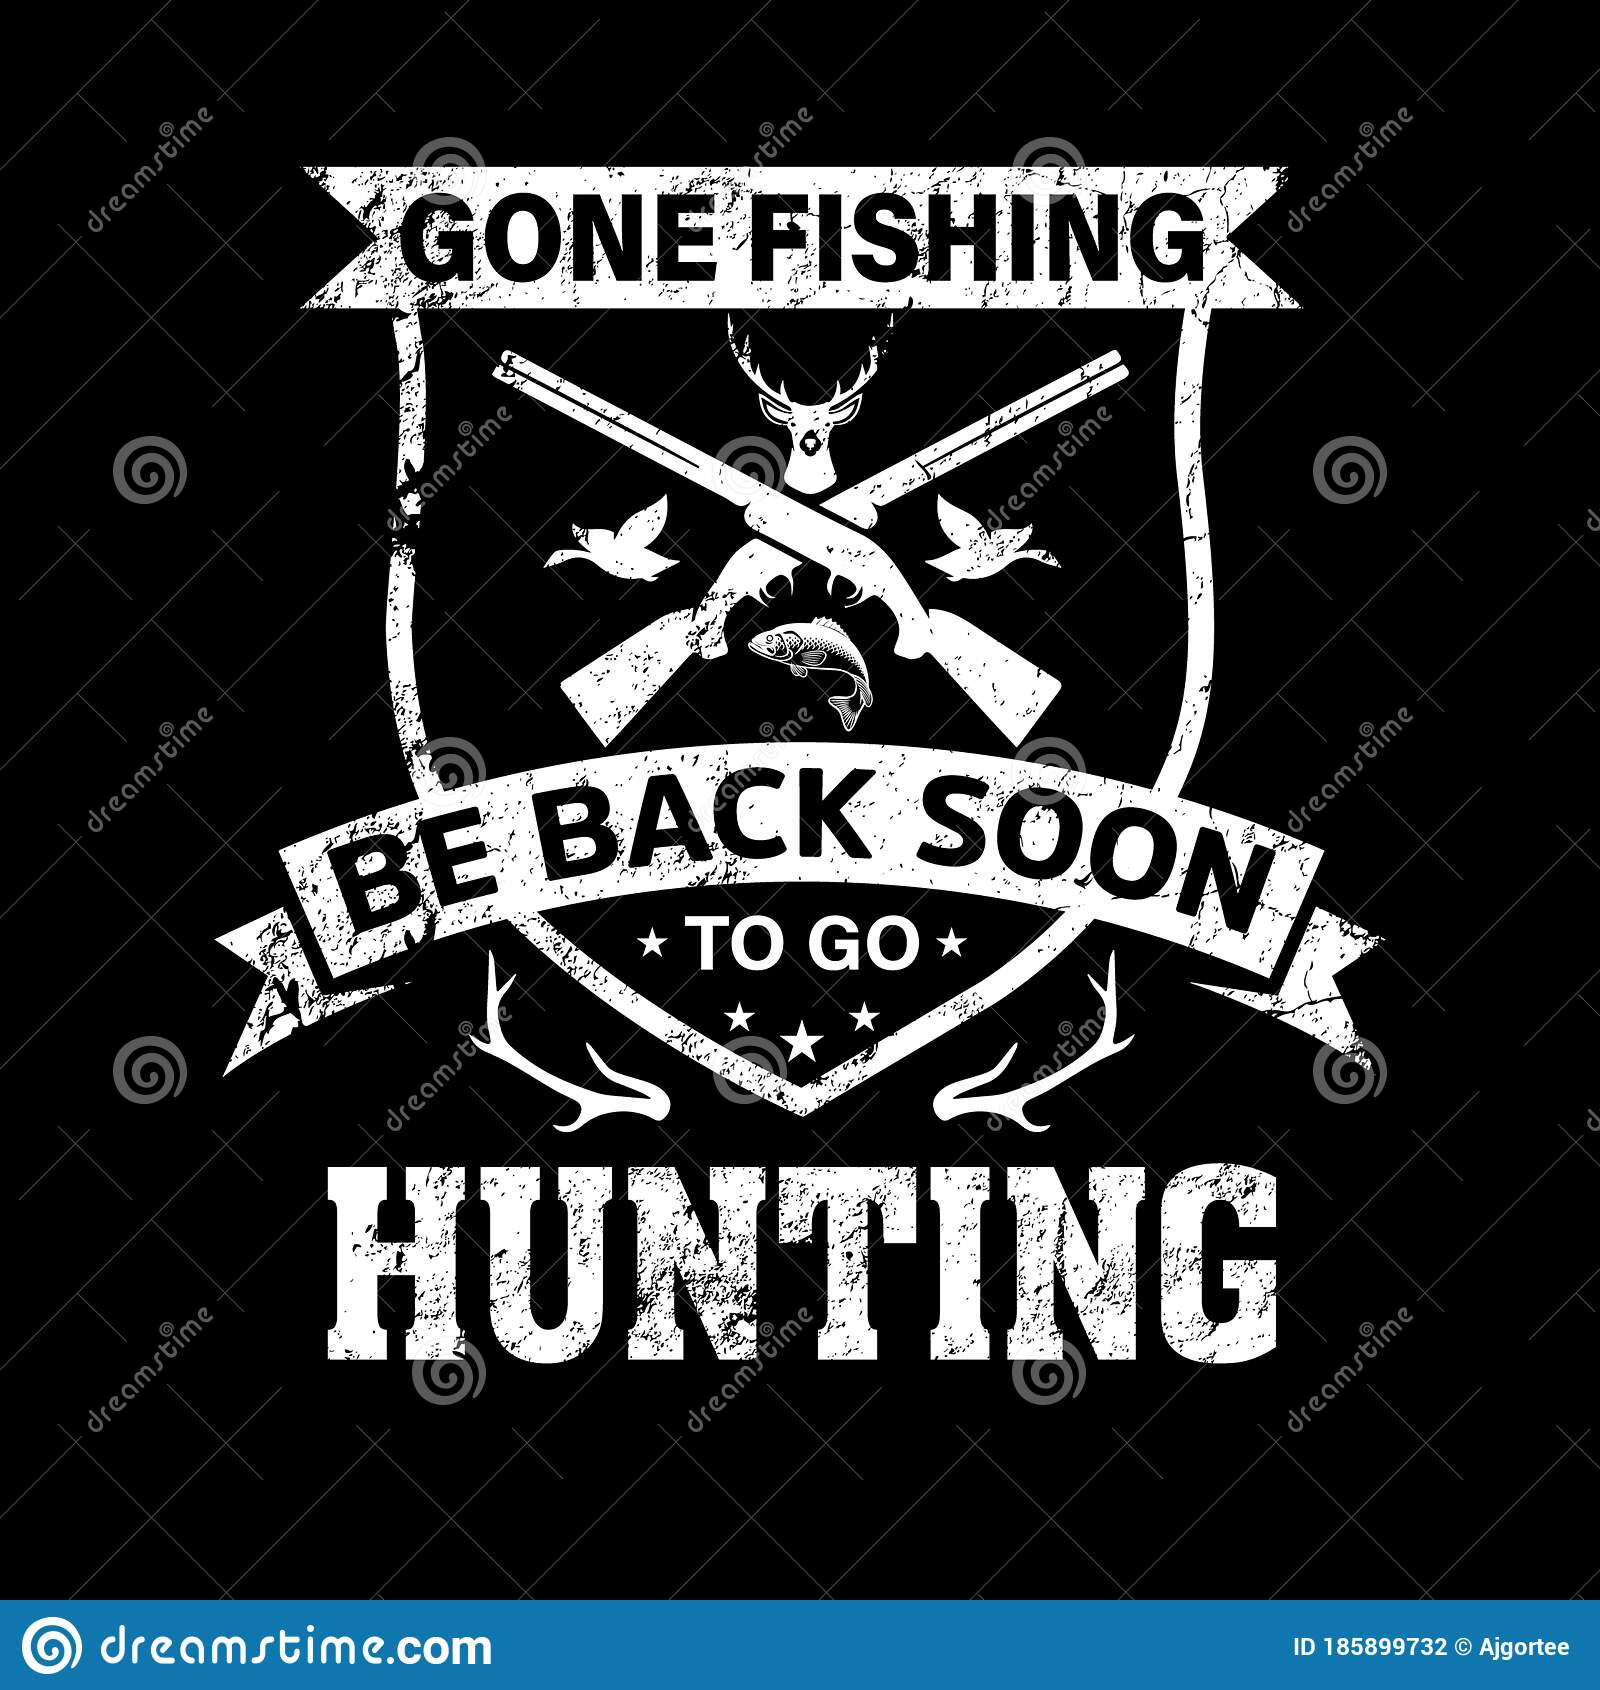 Download Gone Fishing Be Back Soon To Go Hunting Hunting T Shirt Design Stock Vector Illustration Of Rack Black 185899732